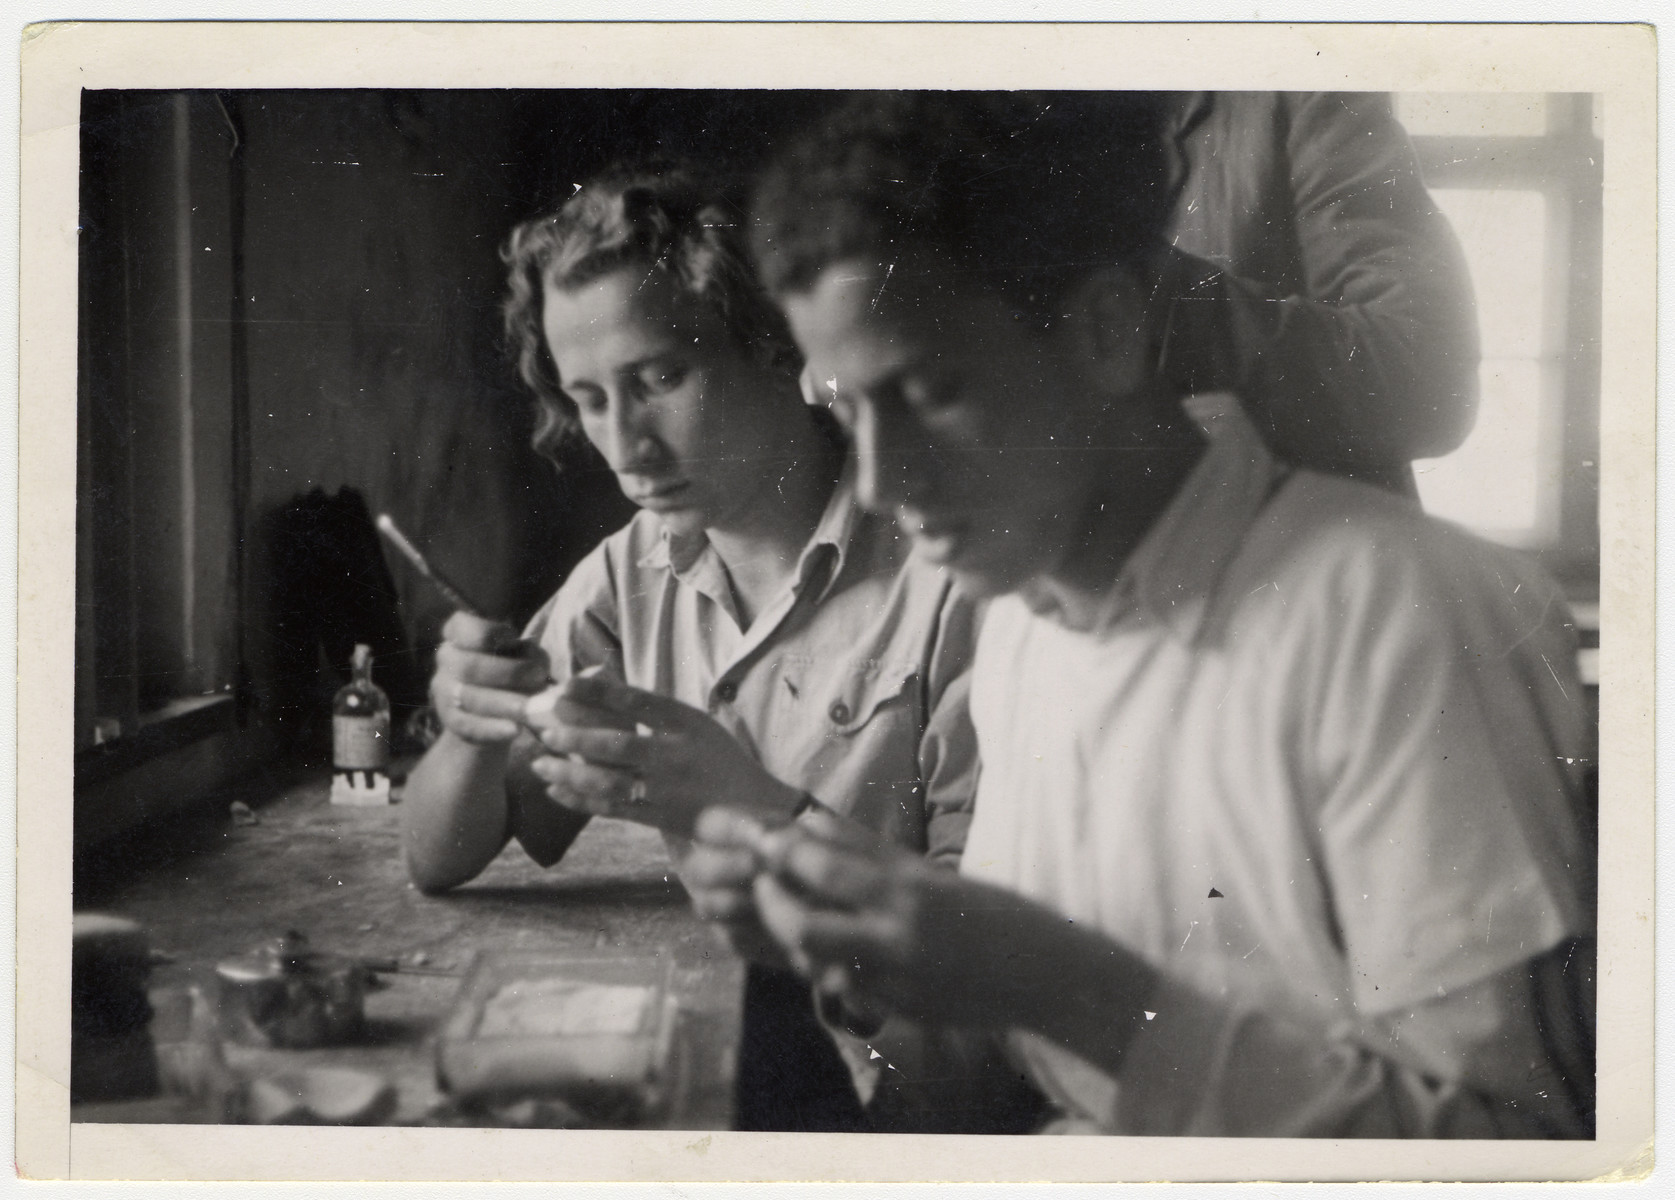 Two young men practice dentistry in the ORT dental technicians school in the Bergen-Belsen displaced persons camp.